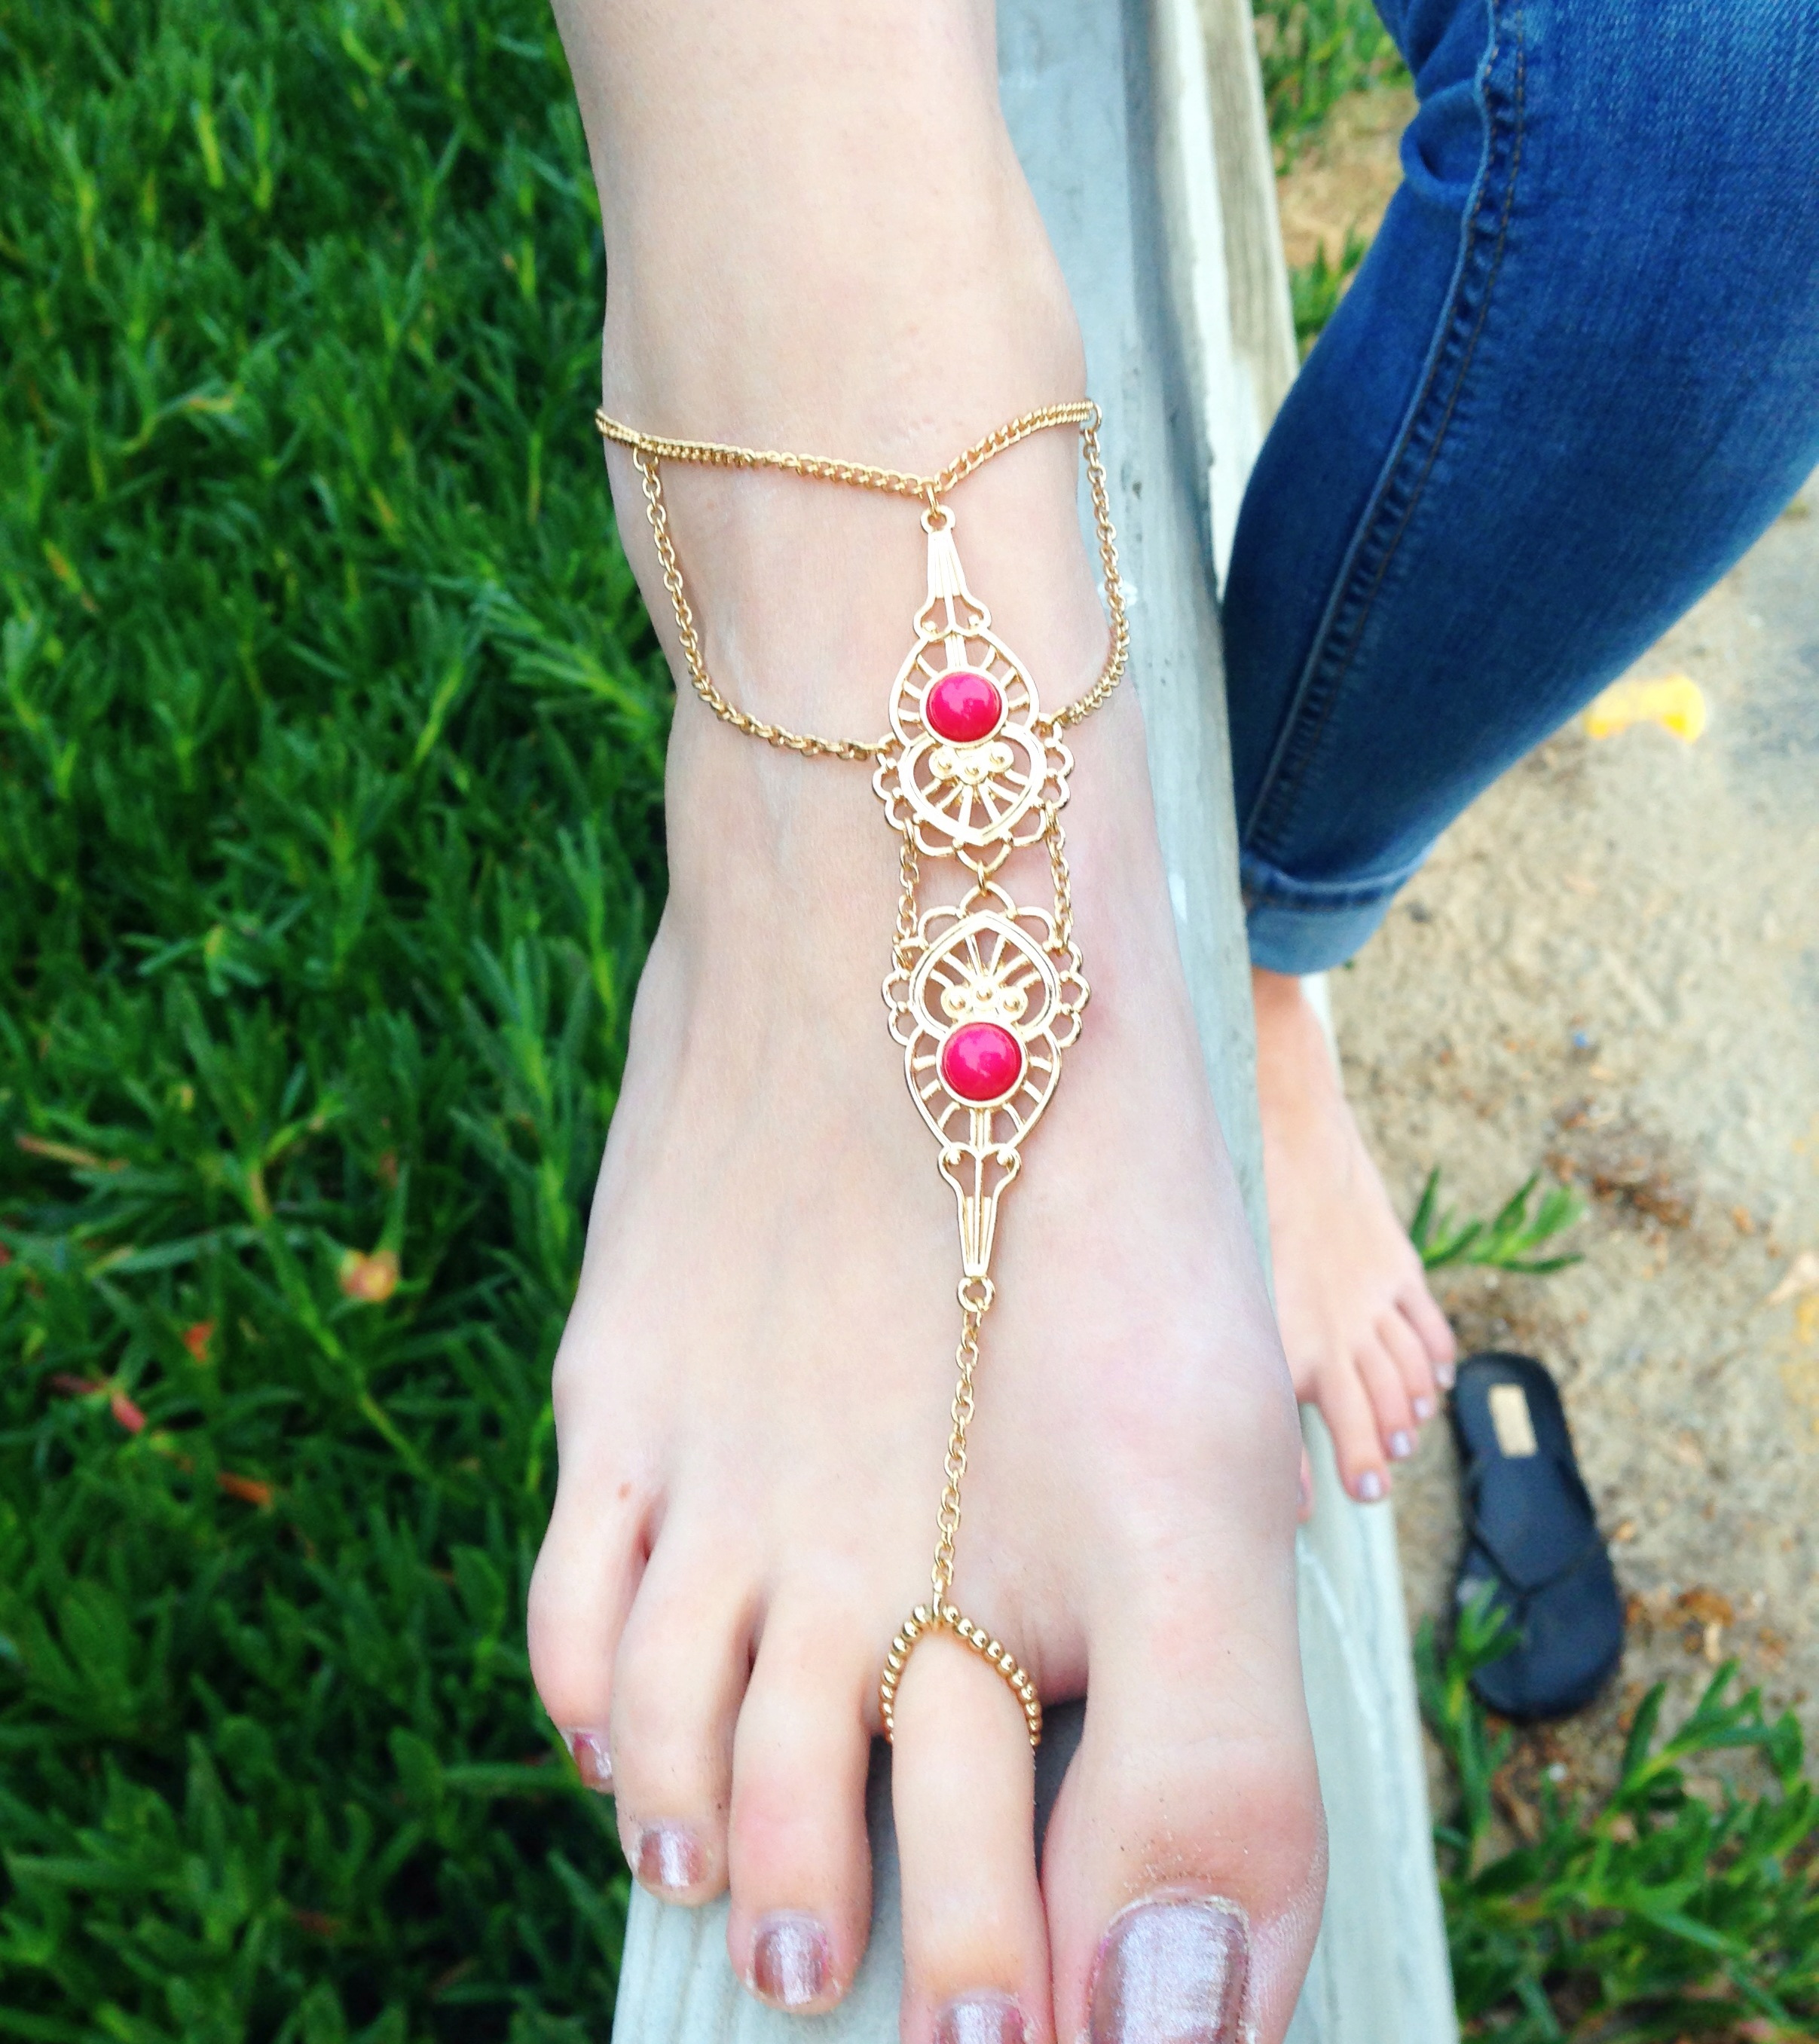 dreamer bohemian anklet products ocean hippie anklets dreams boho dixi share shop